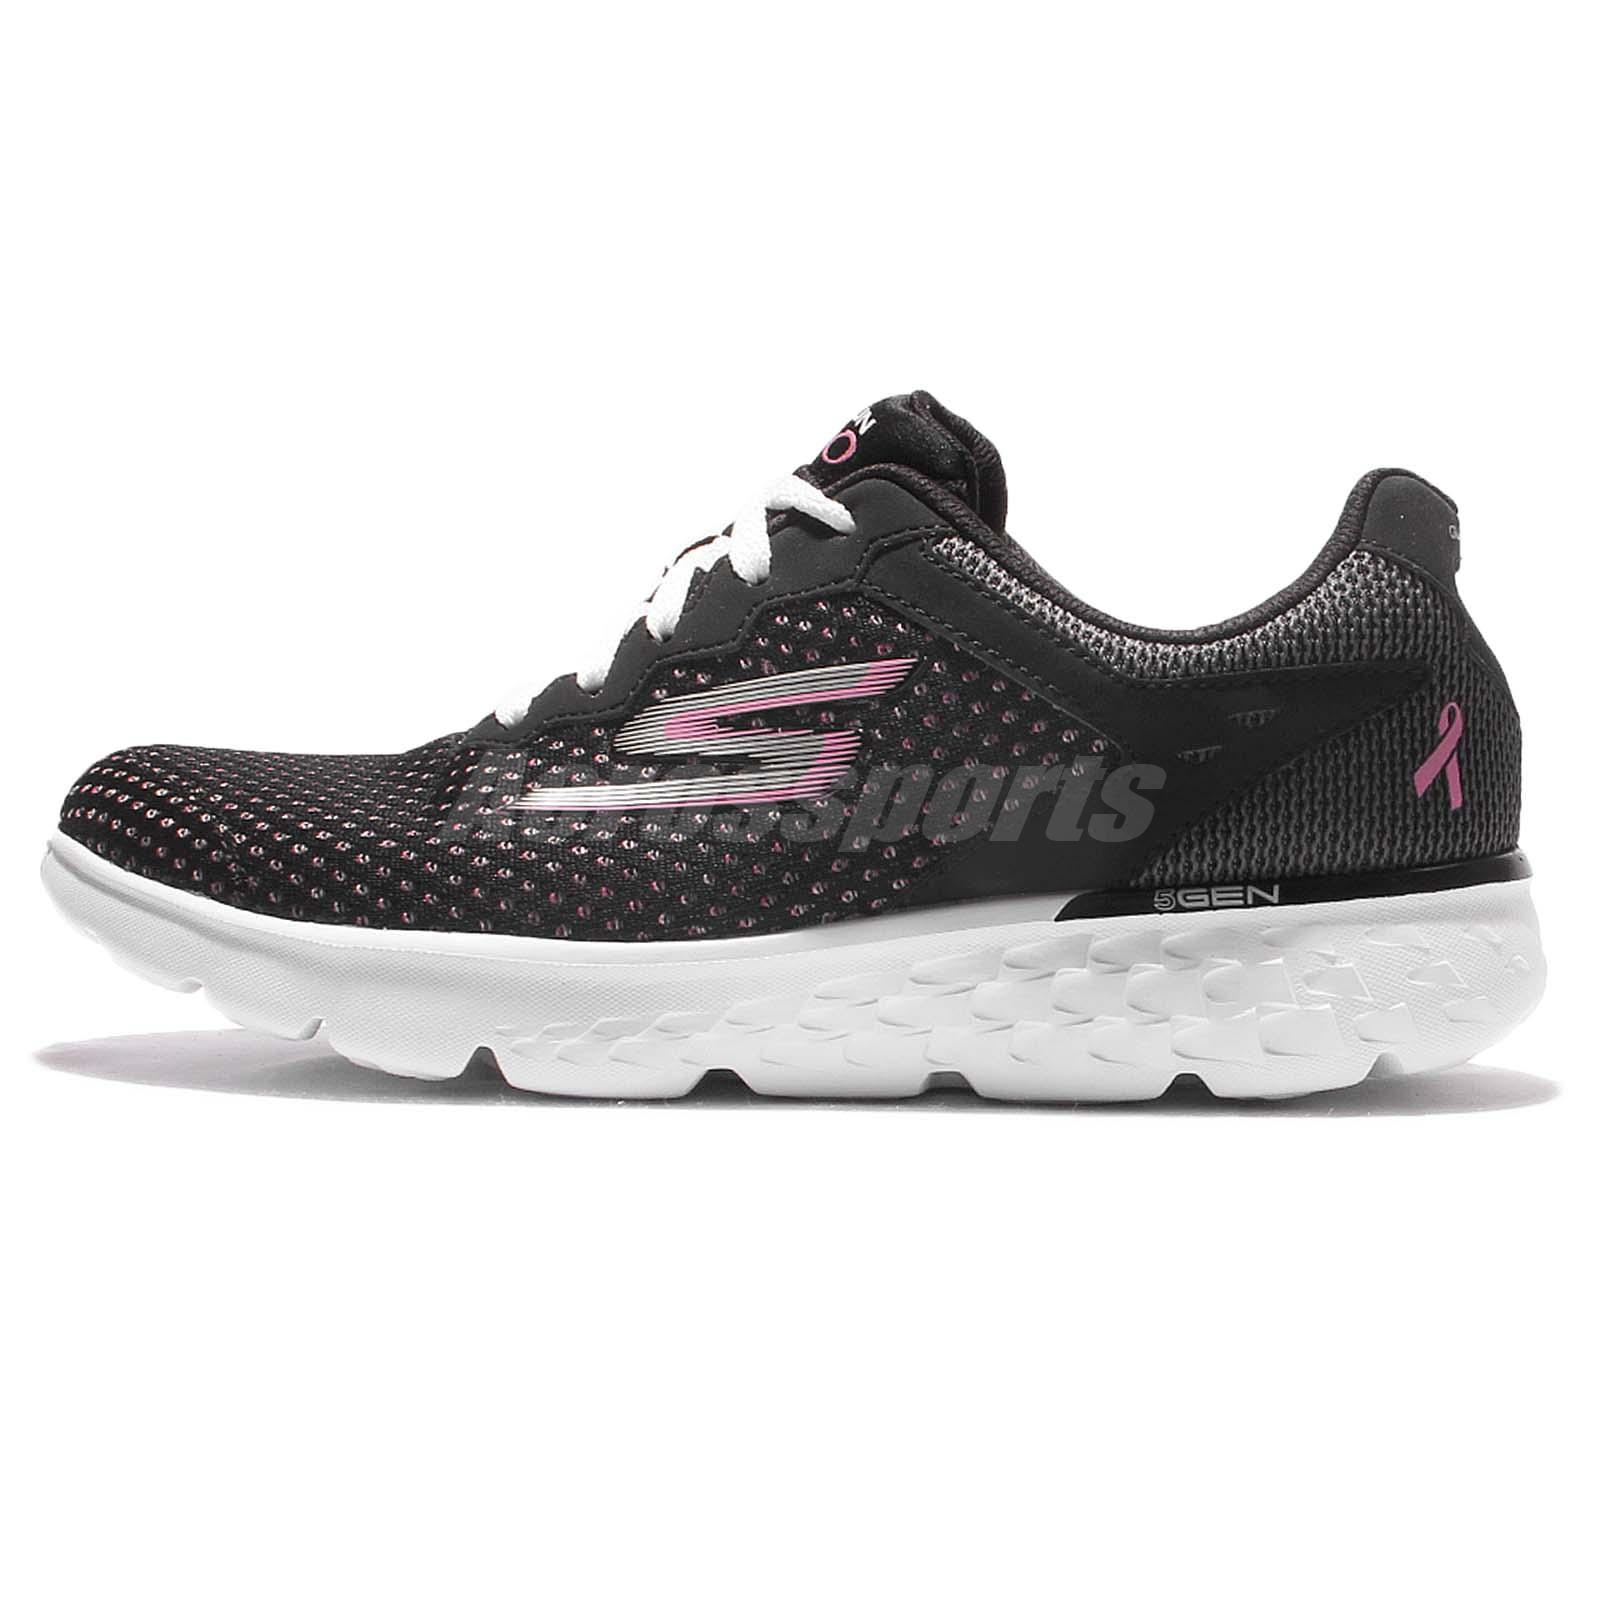 skechers go run 400. skechers go run 400 black pink womens running shoes sneakers 14180-bkpk go